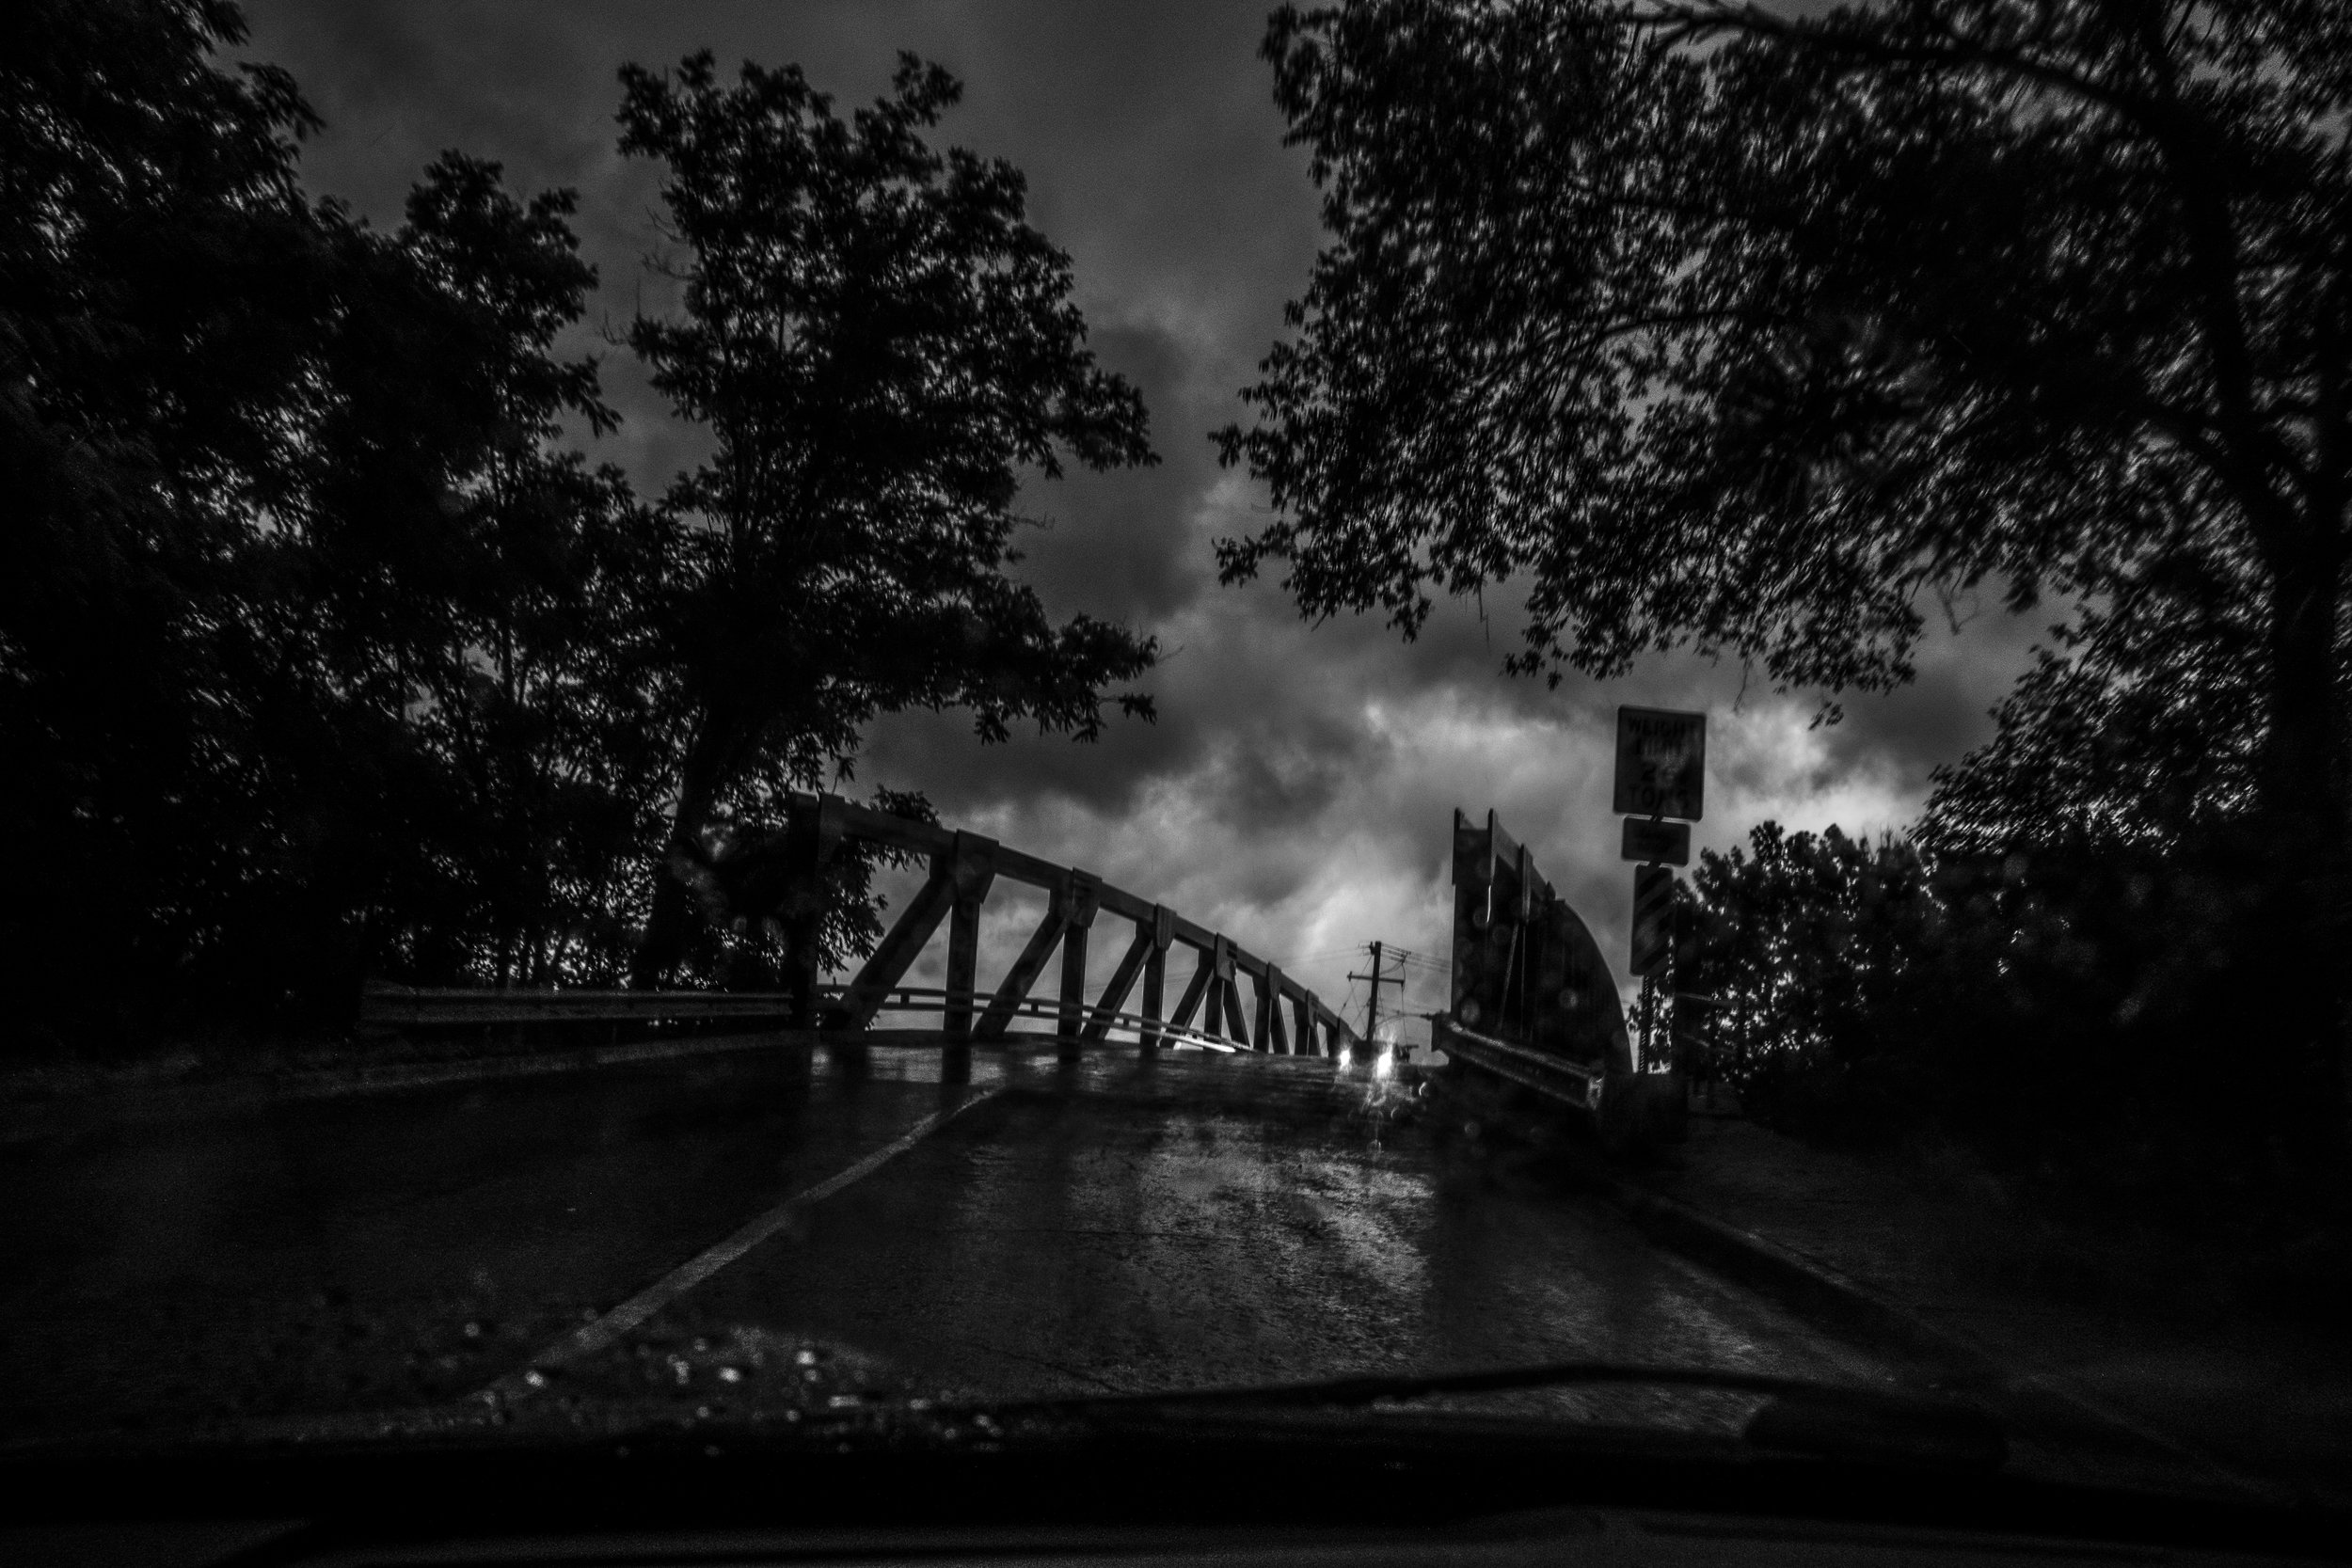 The South Clark Street bridge in Mexico, Missouri as seen during a rainstorm on Sunday, Jun. 16, 2019.